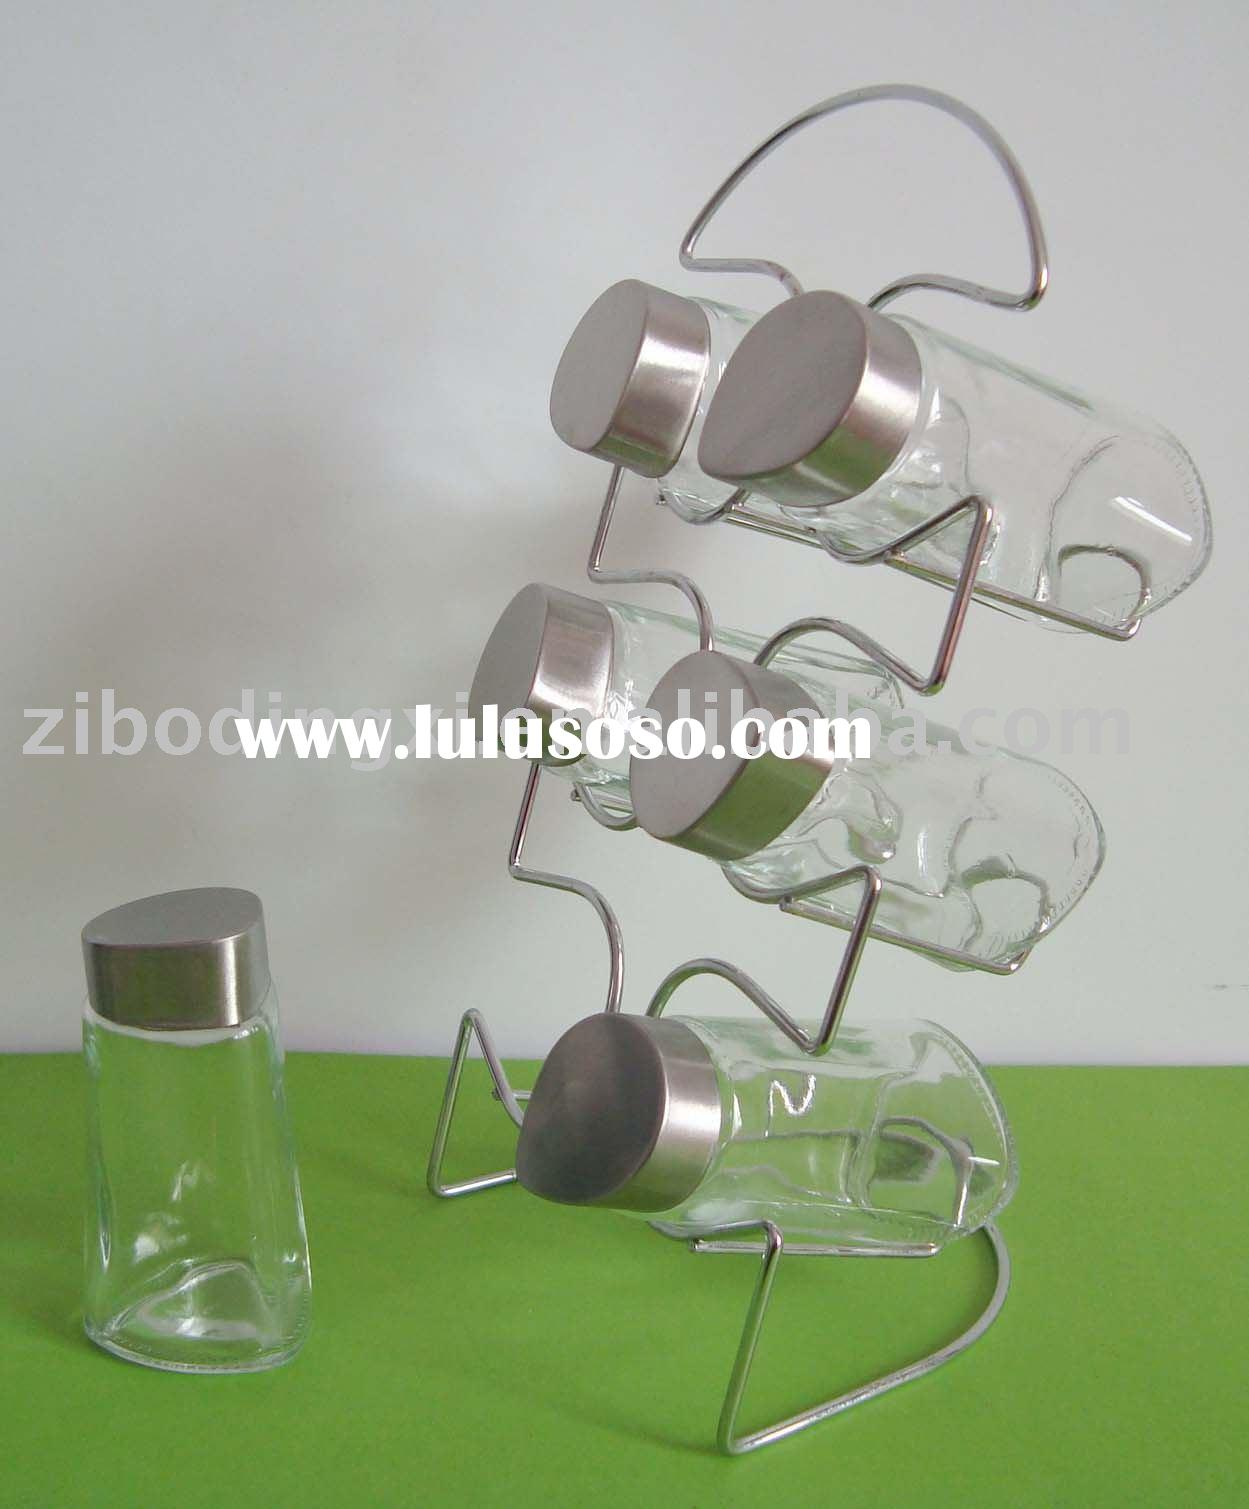 6pcs transparent glass spice jar set with metal rack